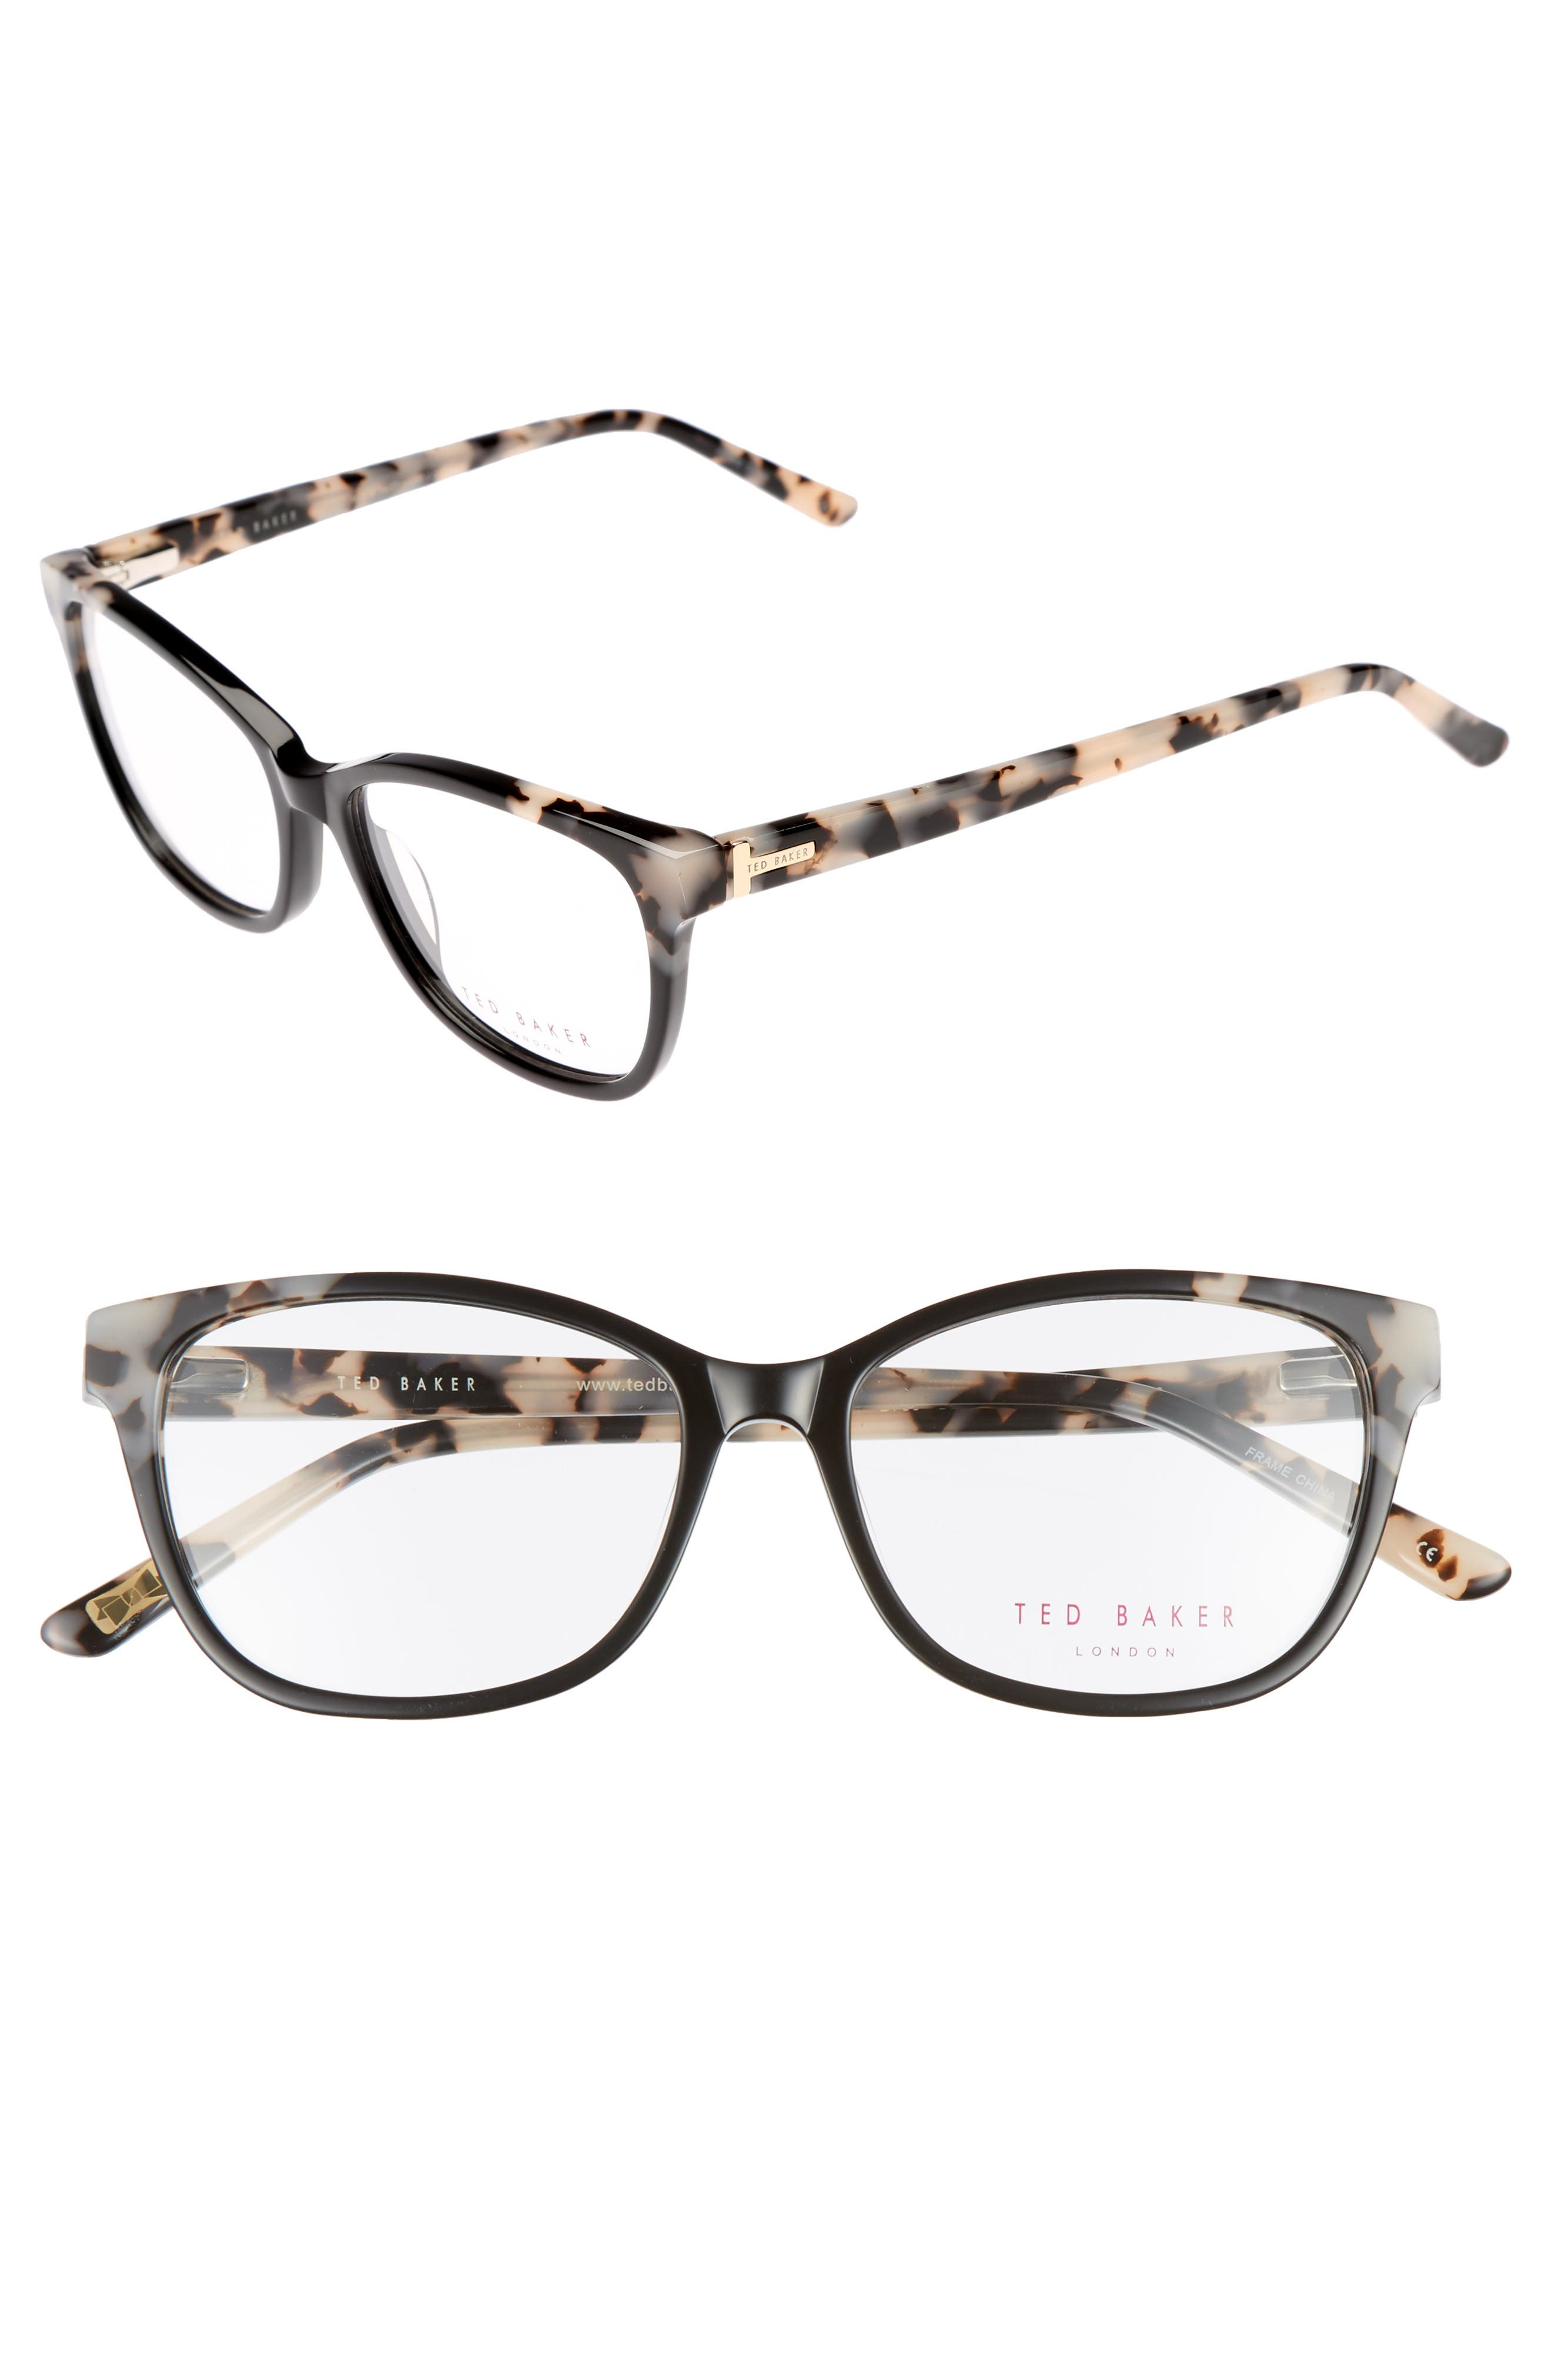 52mm Square Optical Glasses,                             Main thumbnail 1, color,